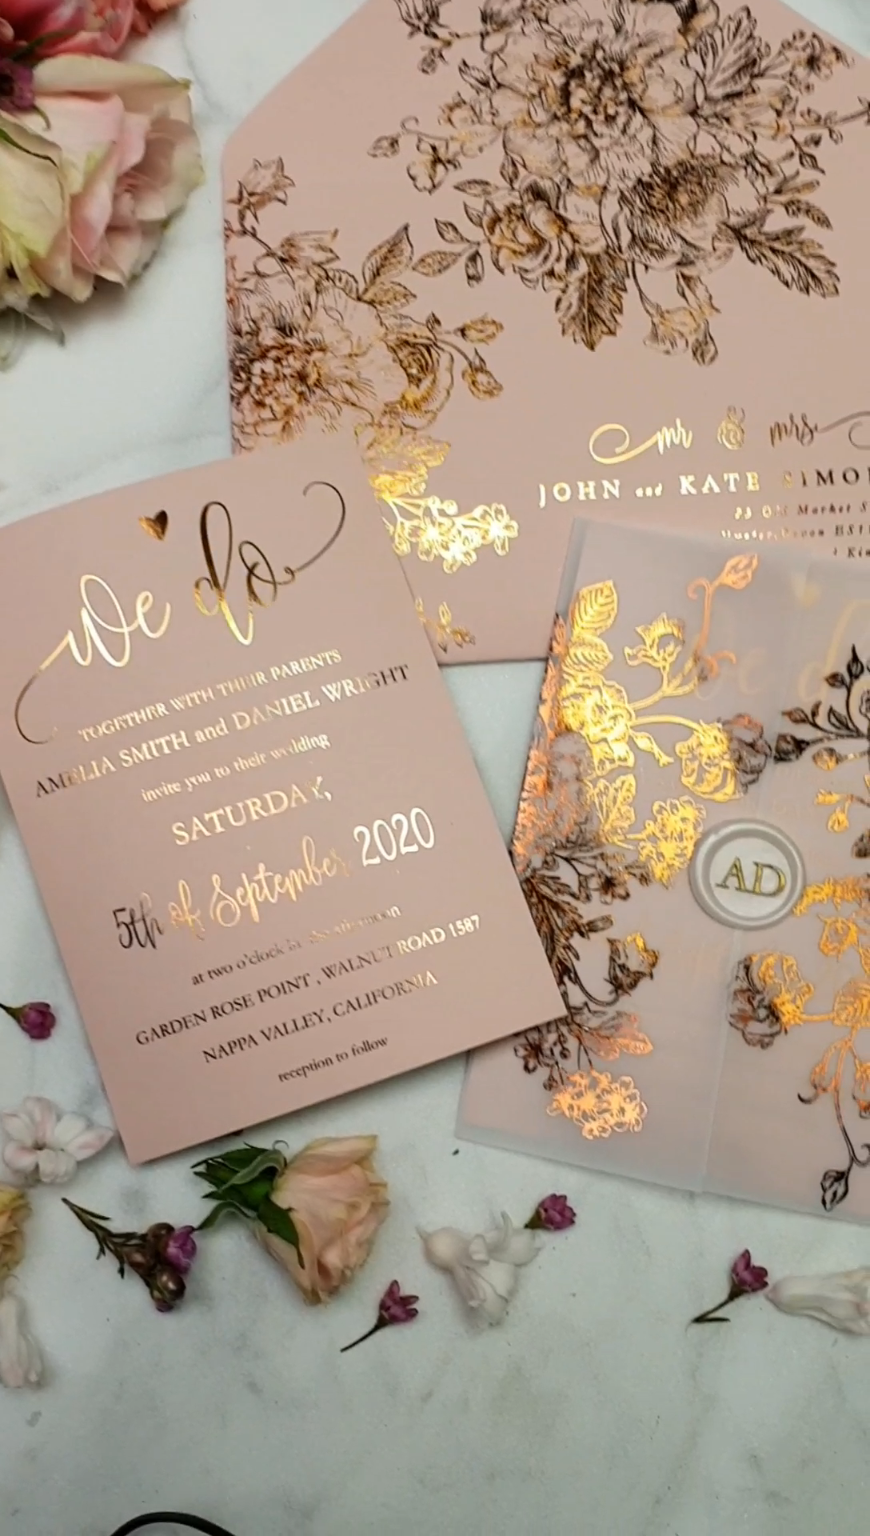 Personalized wedding invitation suite to match your gold glitter theme style and budget! We do Rose Gold wedding Invitation suite with Vellum wraping paper and Was seal #gold decor diy videos Rose Gold Wedding Invitations